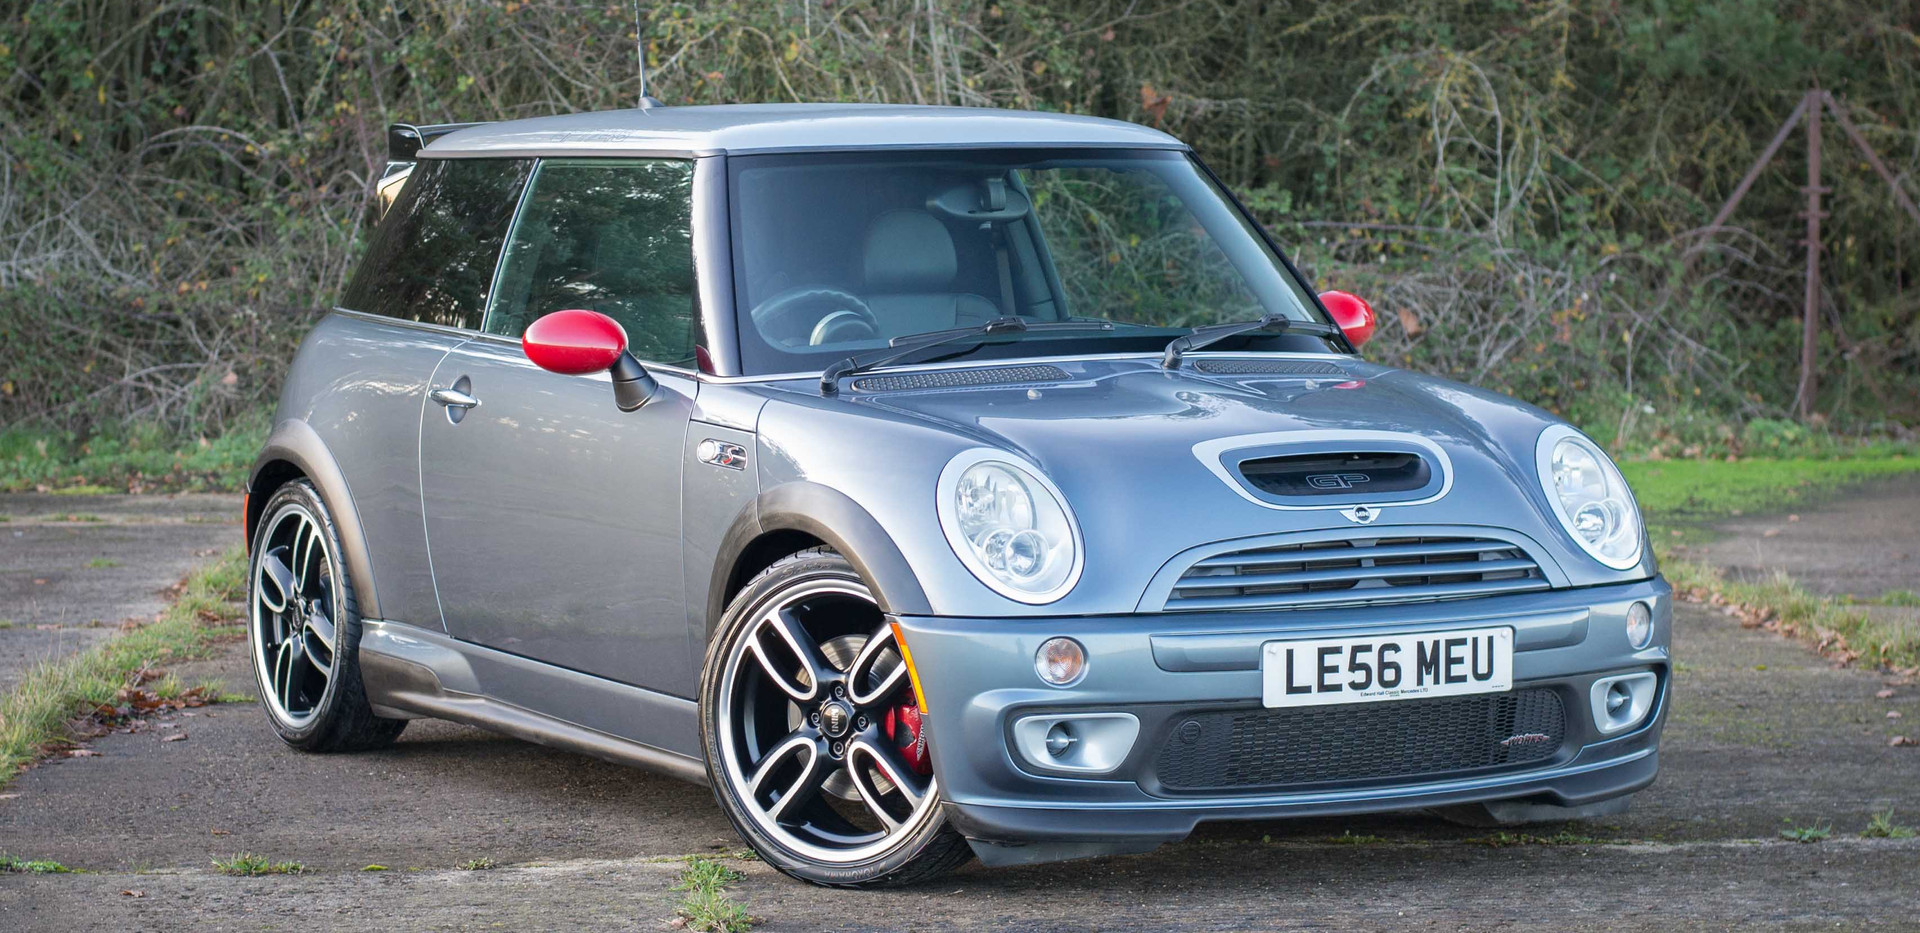 MINI JCW GP For Sale UK London  (39 of 4